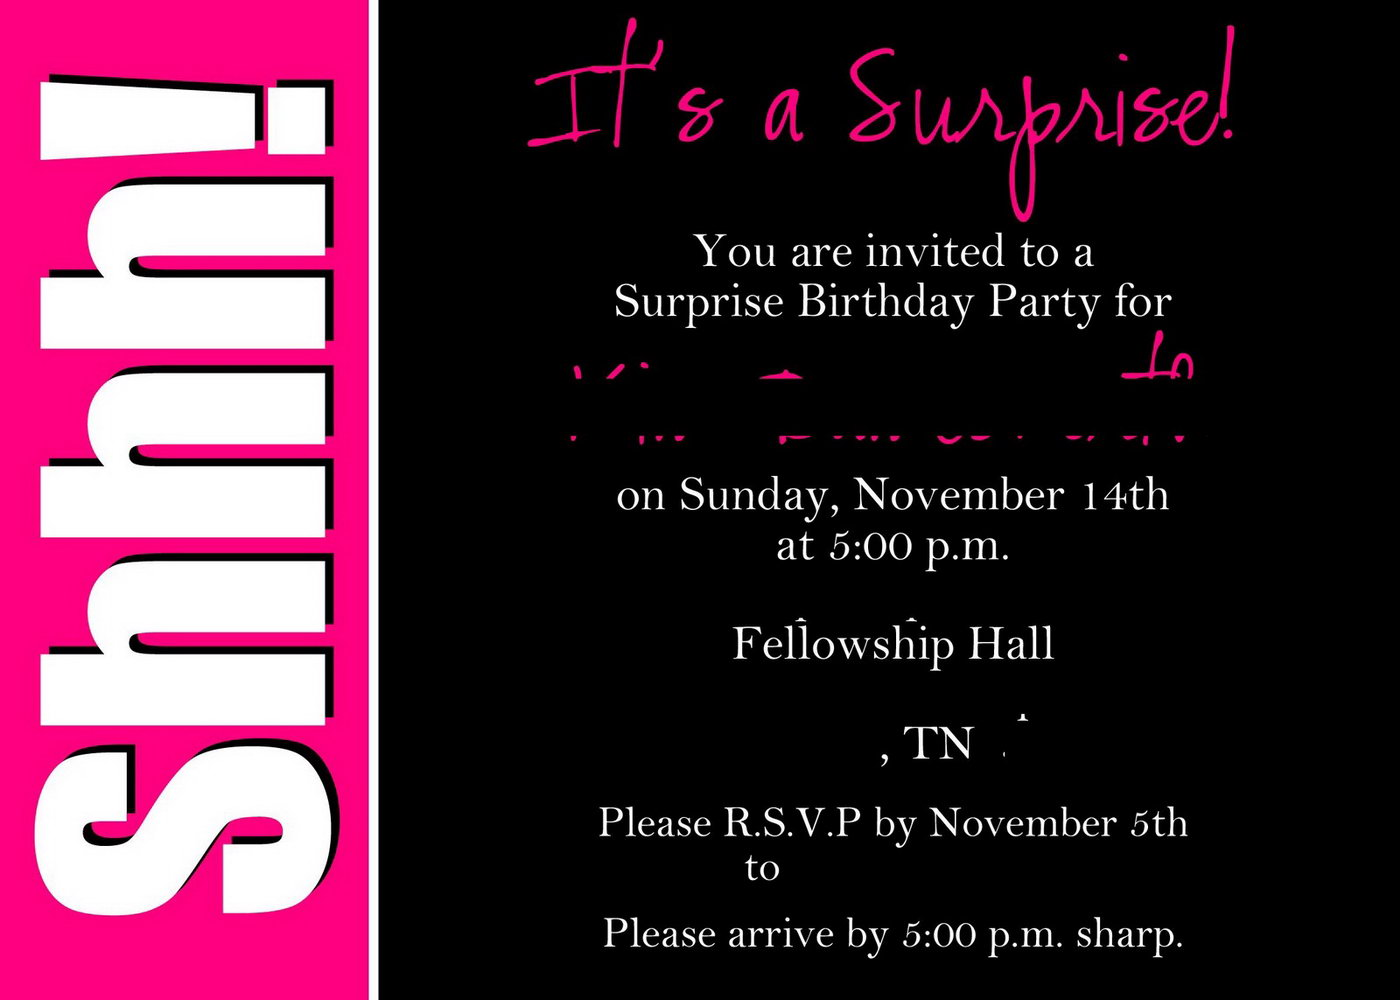 Surprise Birthday Party Invite Template